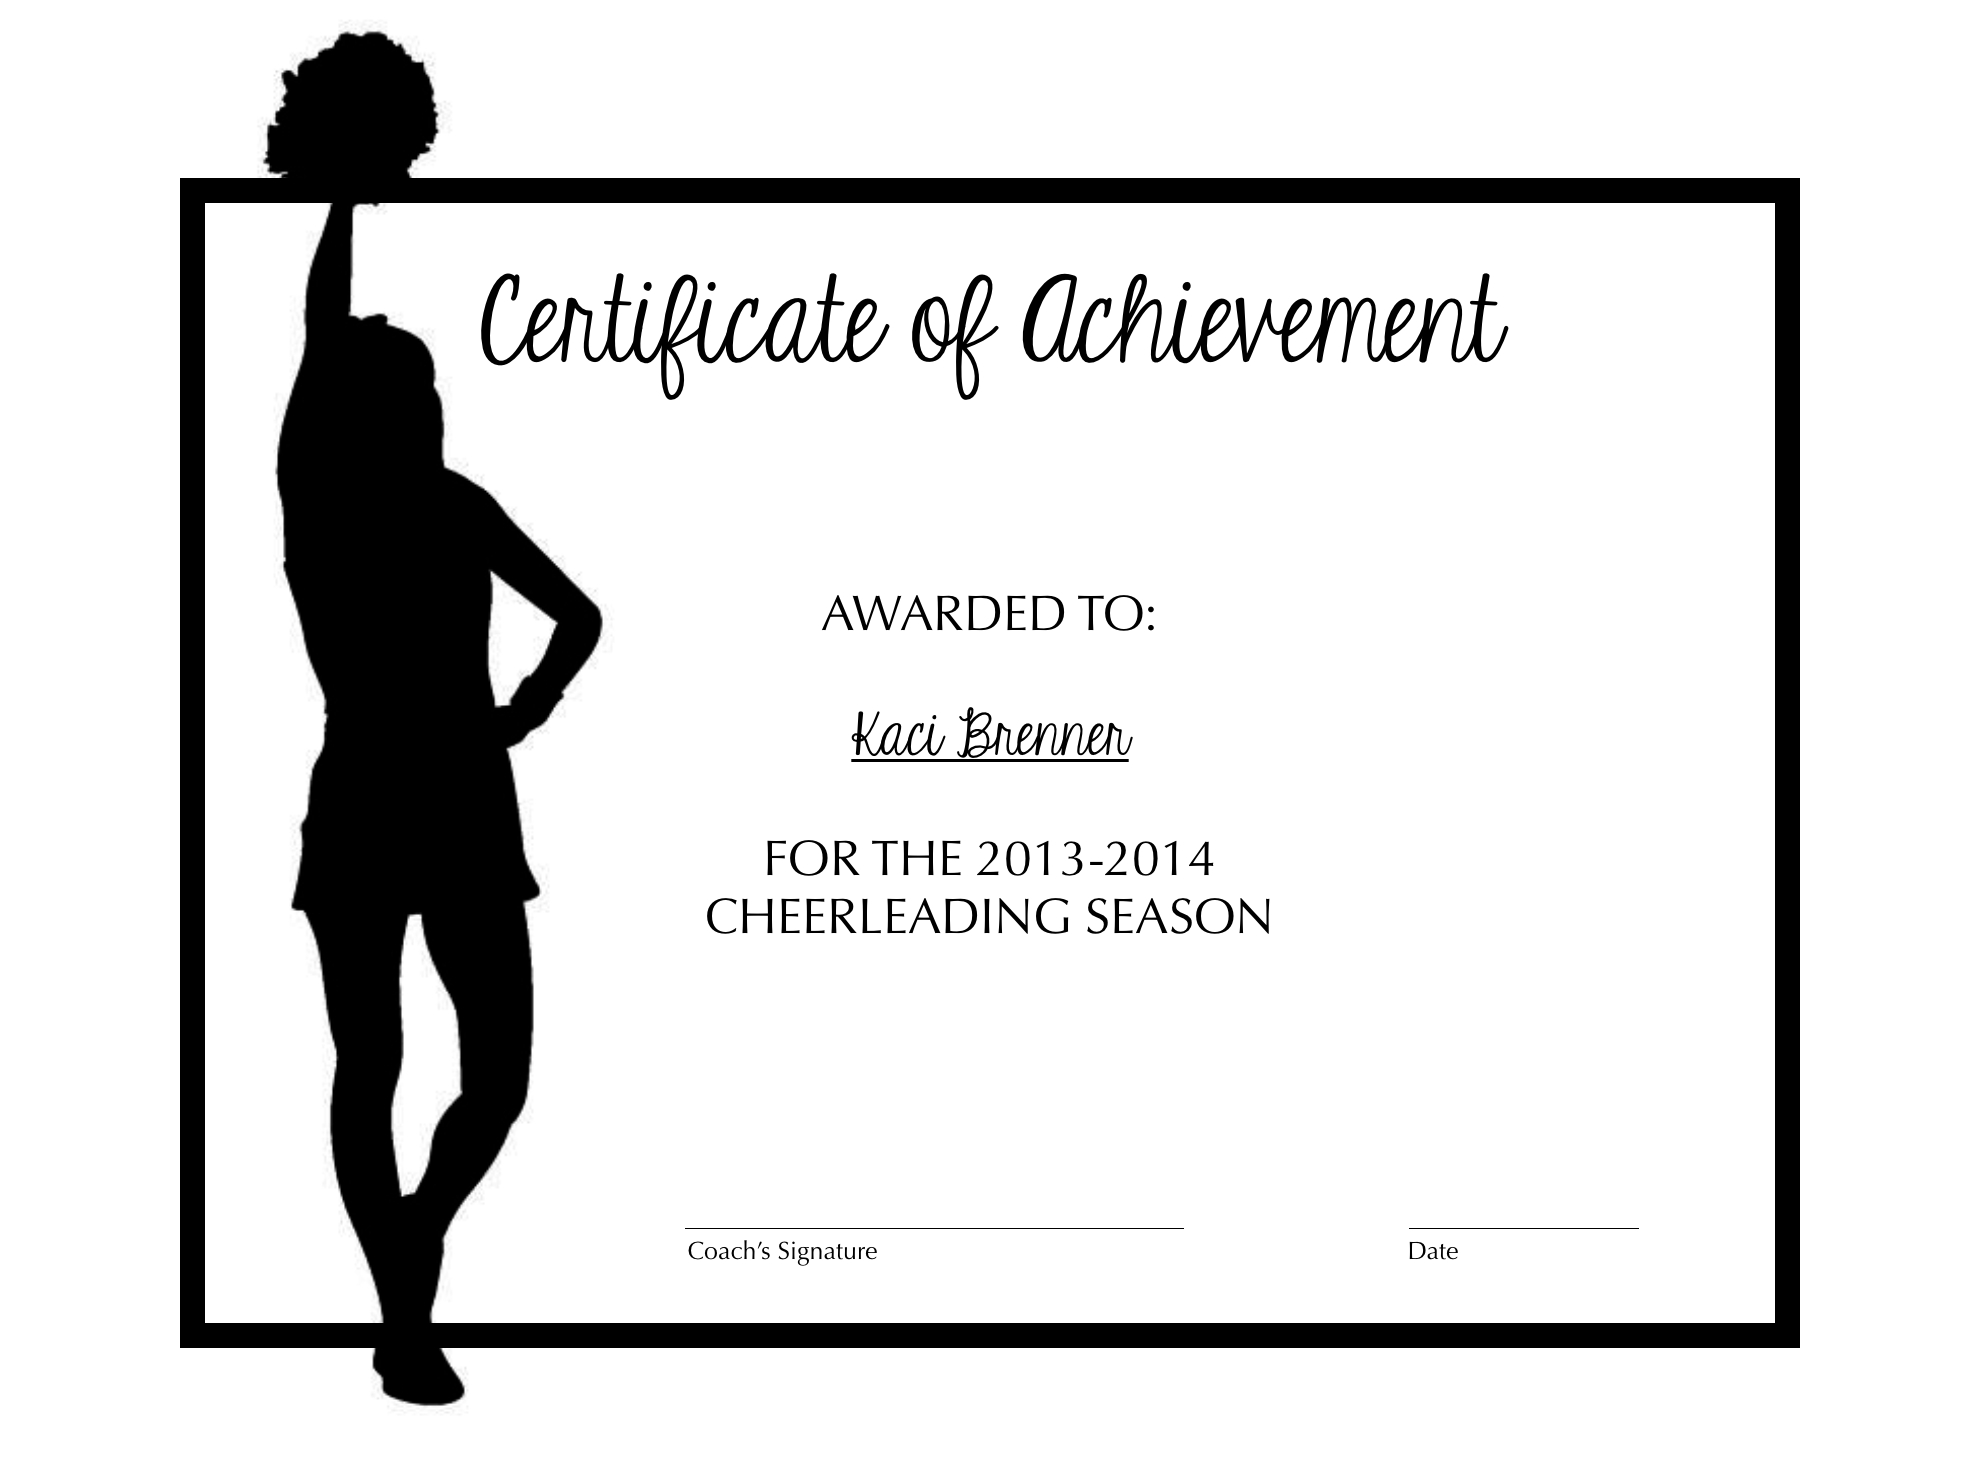 Cheerleading Certificate Of Achievement | Cheer | Pinterest | Cheer - Free Printable Cheerleading Certificates